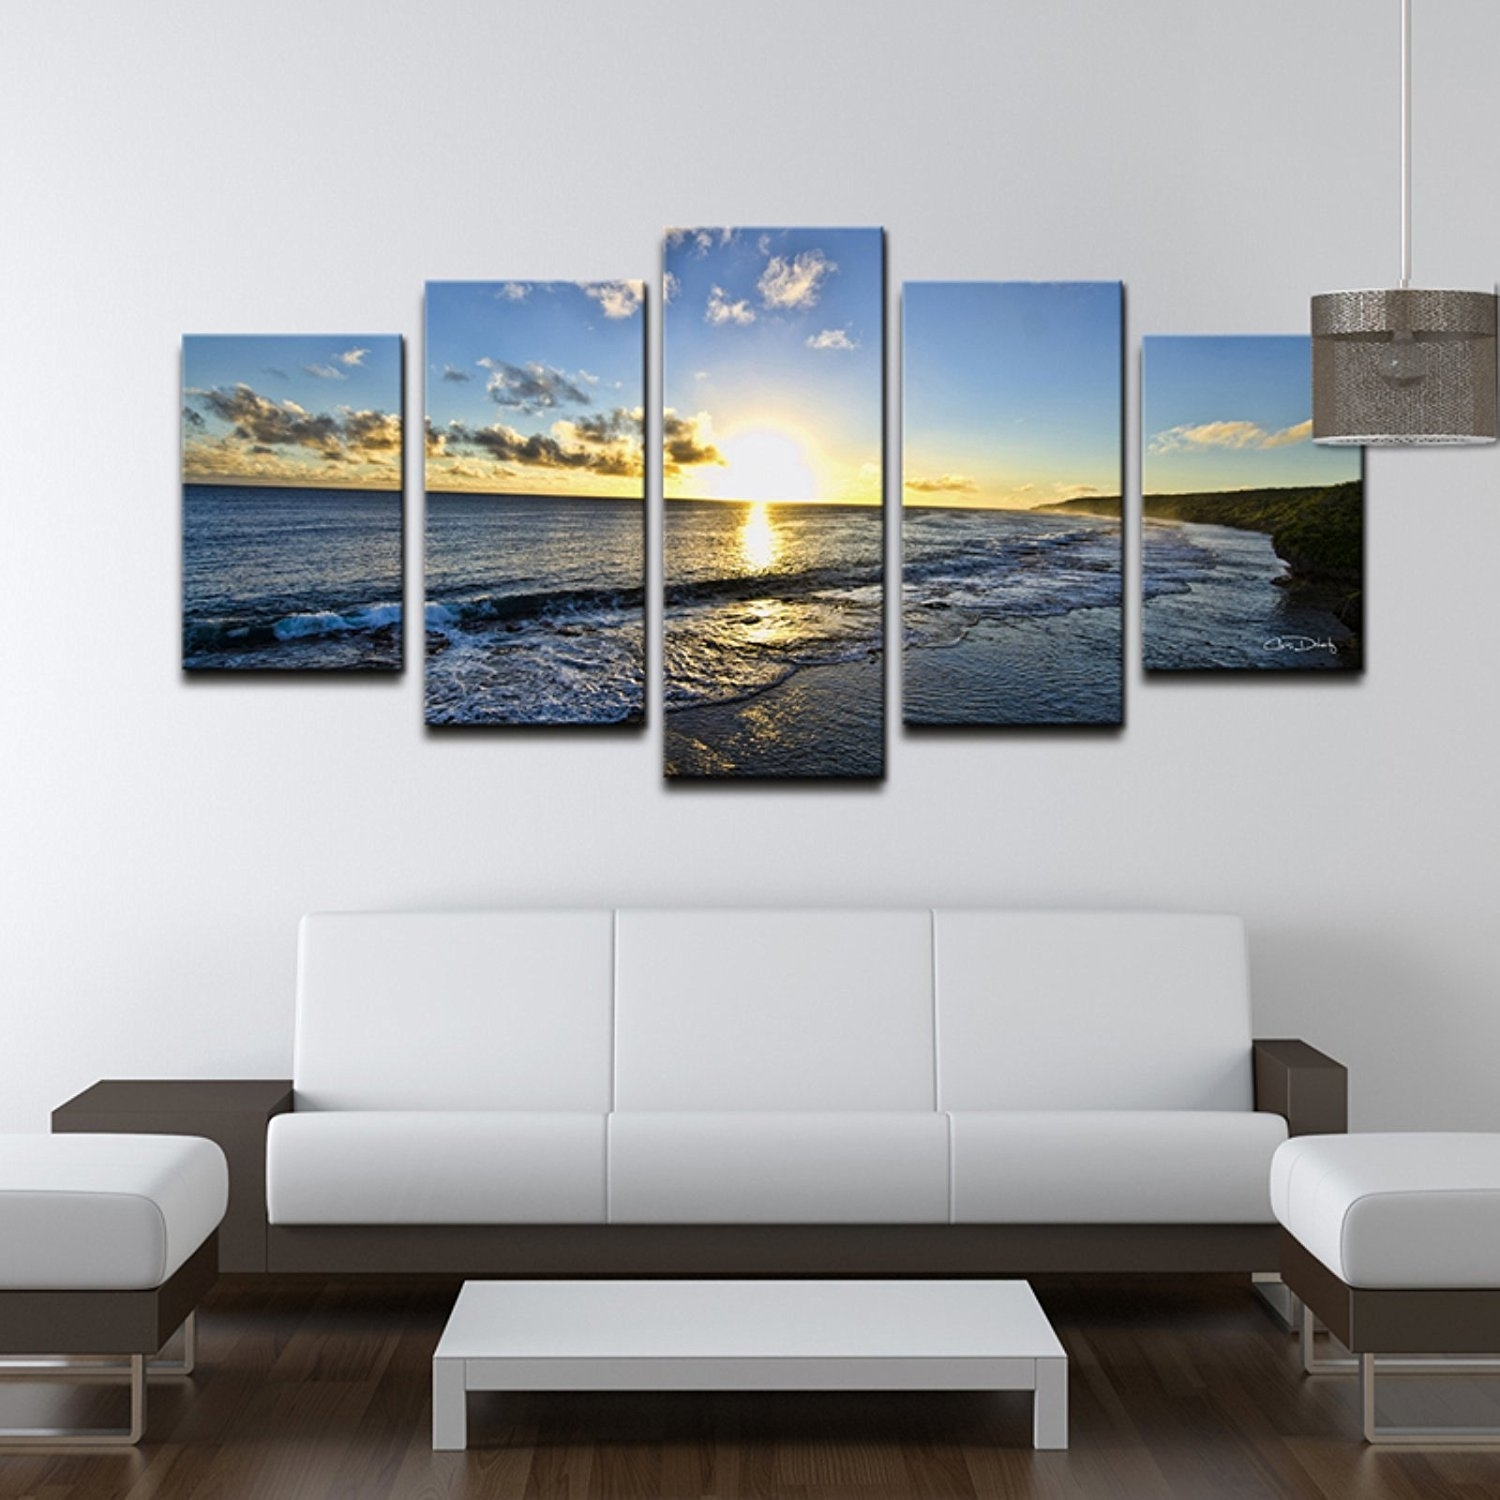 5 Piece Canvas Wall Art Sets Wayfair | Creative Ideas Regarding Current Canvas Wall Art At Wayfair (View 1 of 15)